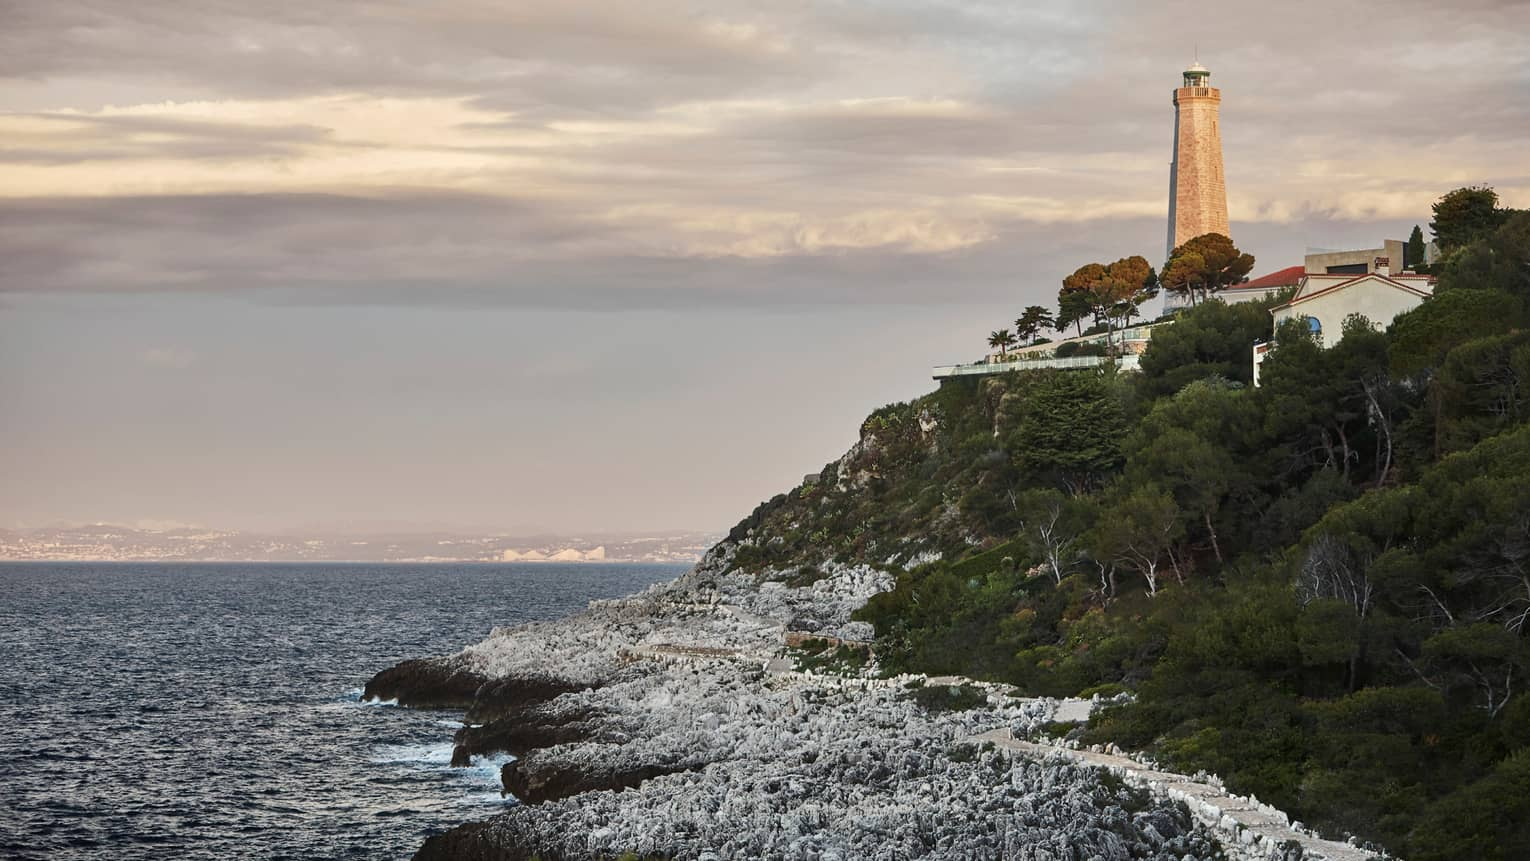 Stone lighthouse tower on rocky green cliff over crashing waves, sea